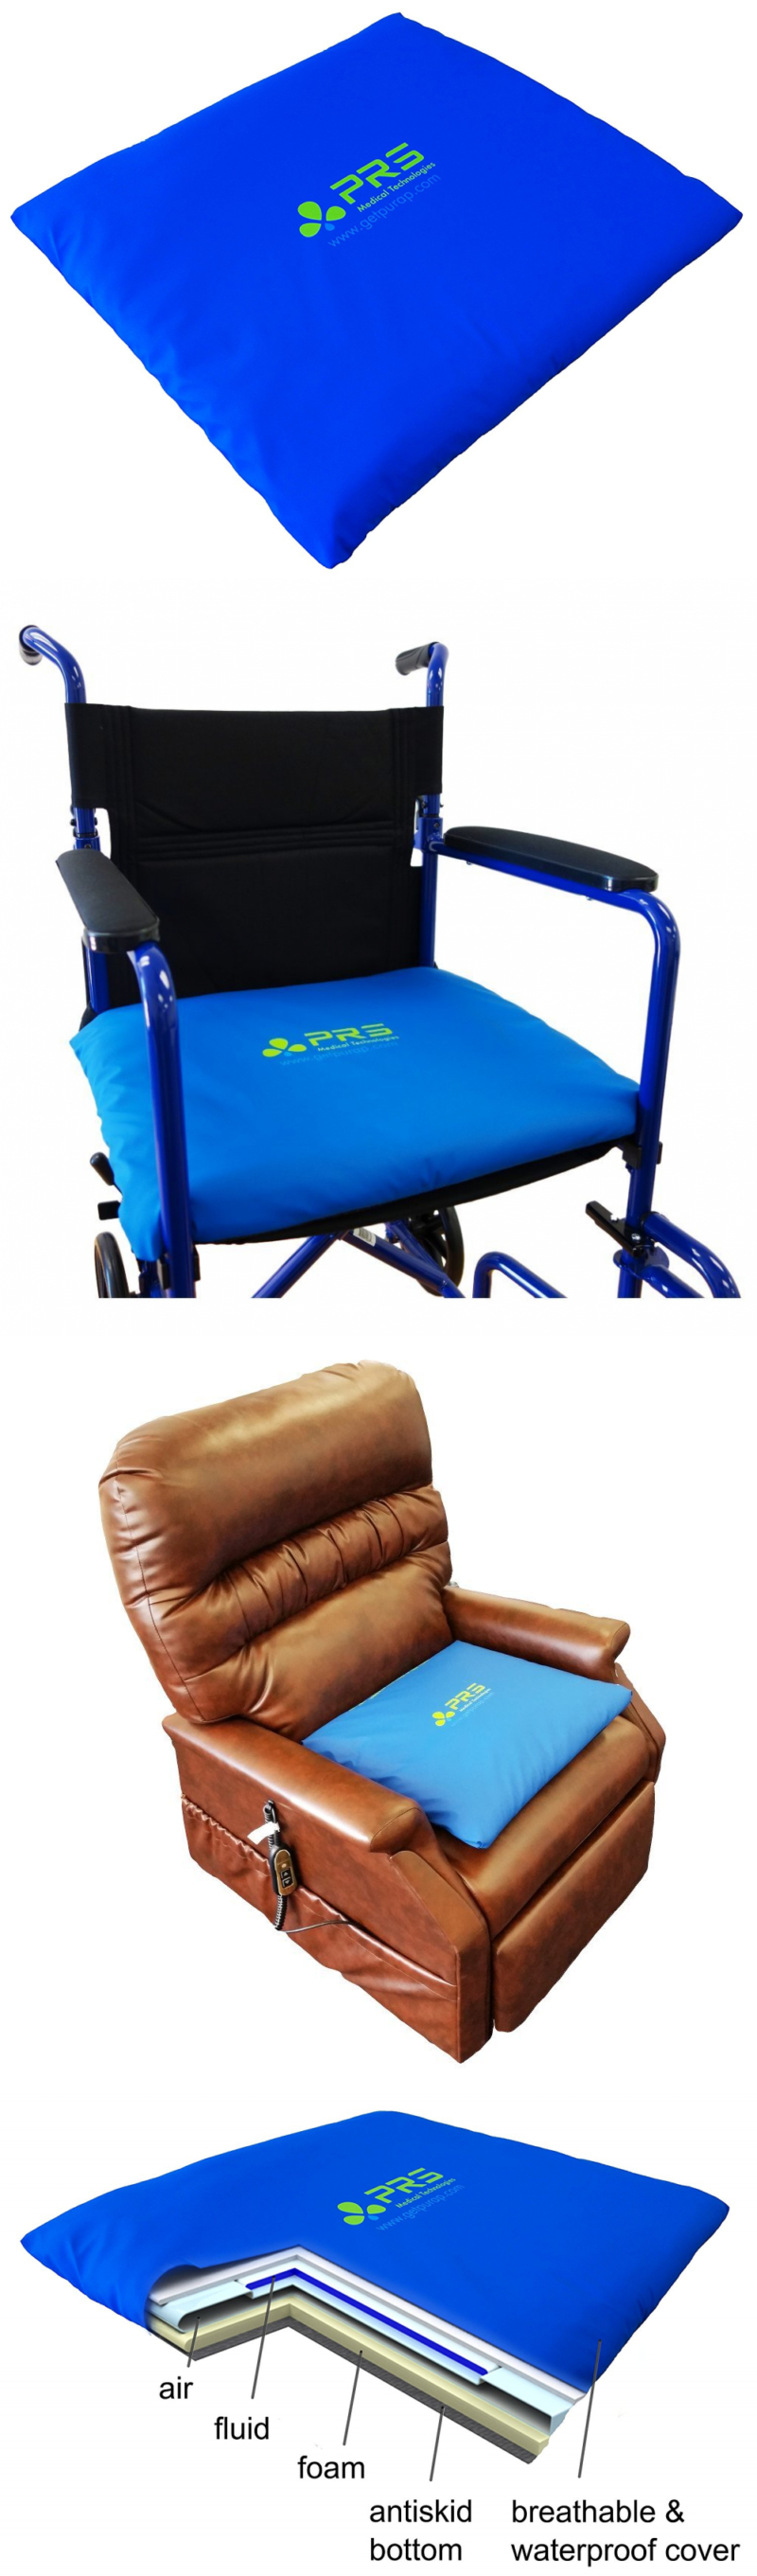 Seat and Posture Cushions Purap Clinical Cushion For Wheelchairs